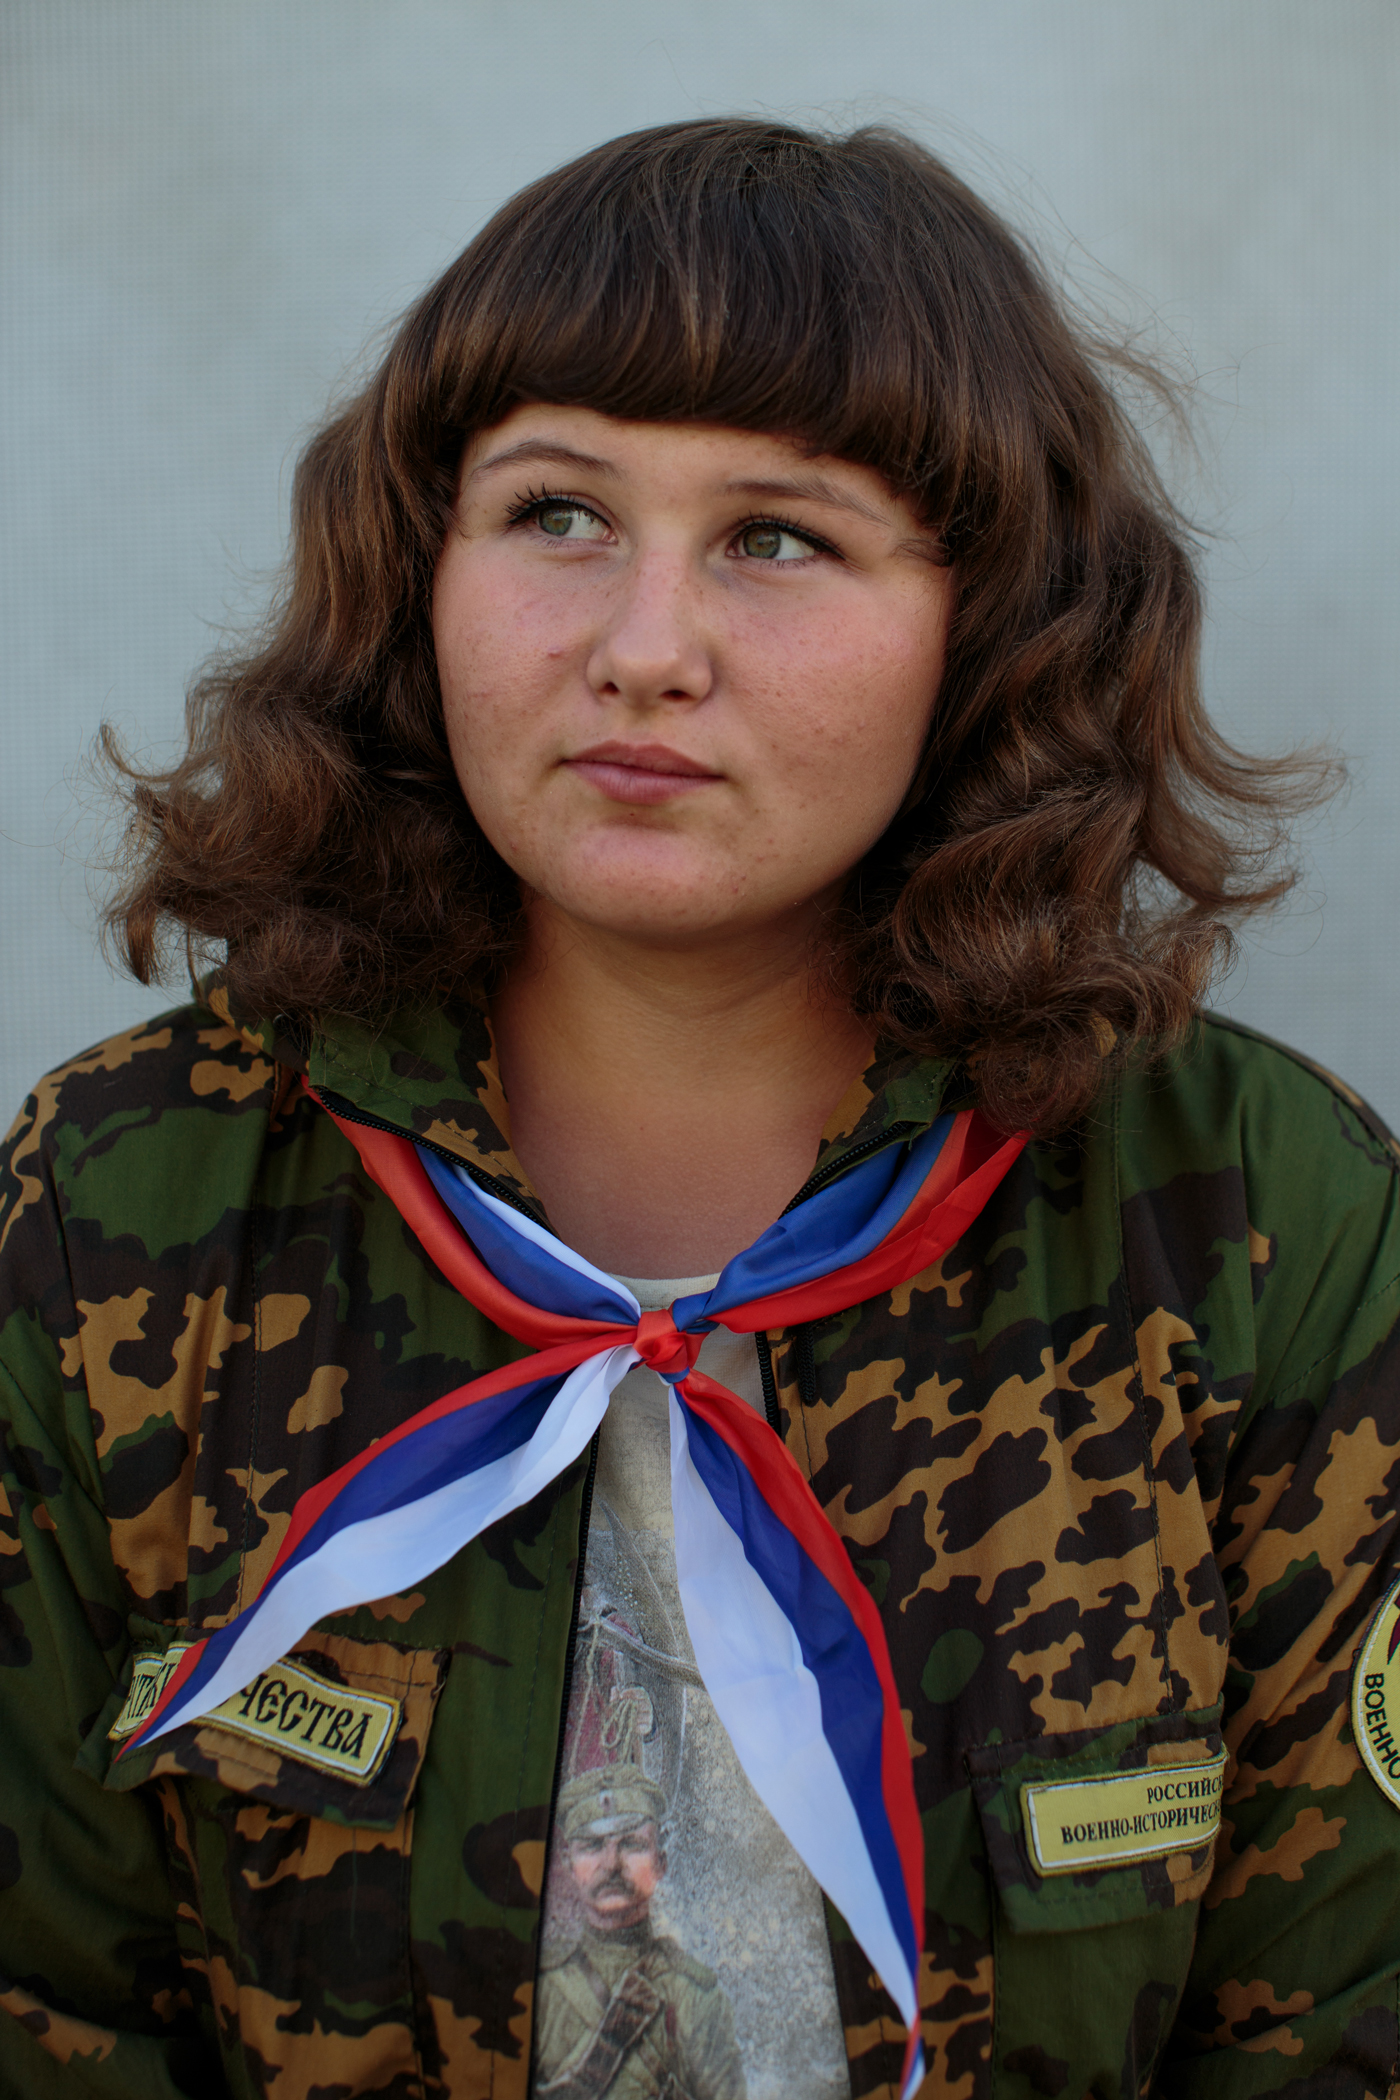 Vika Meshkova, 14, from Radyukino. Russia, poses for a portrait. The camp is free for all kids to attend.